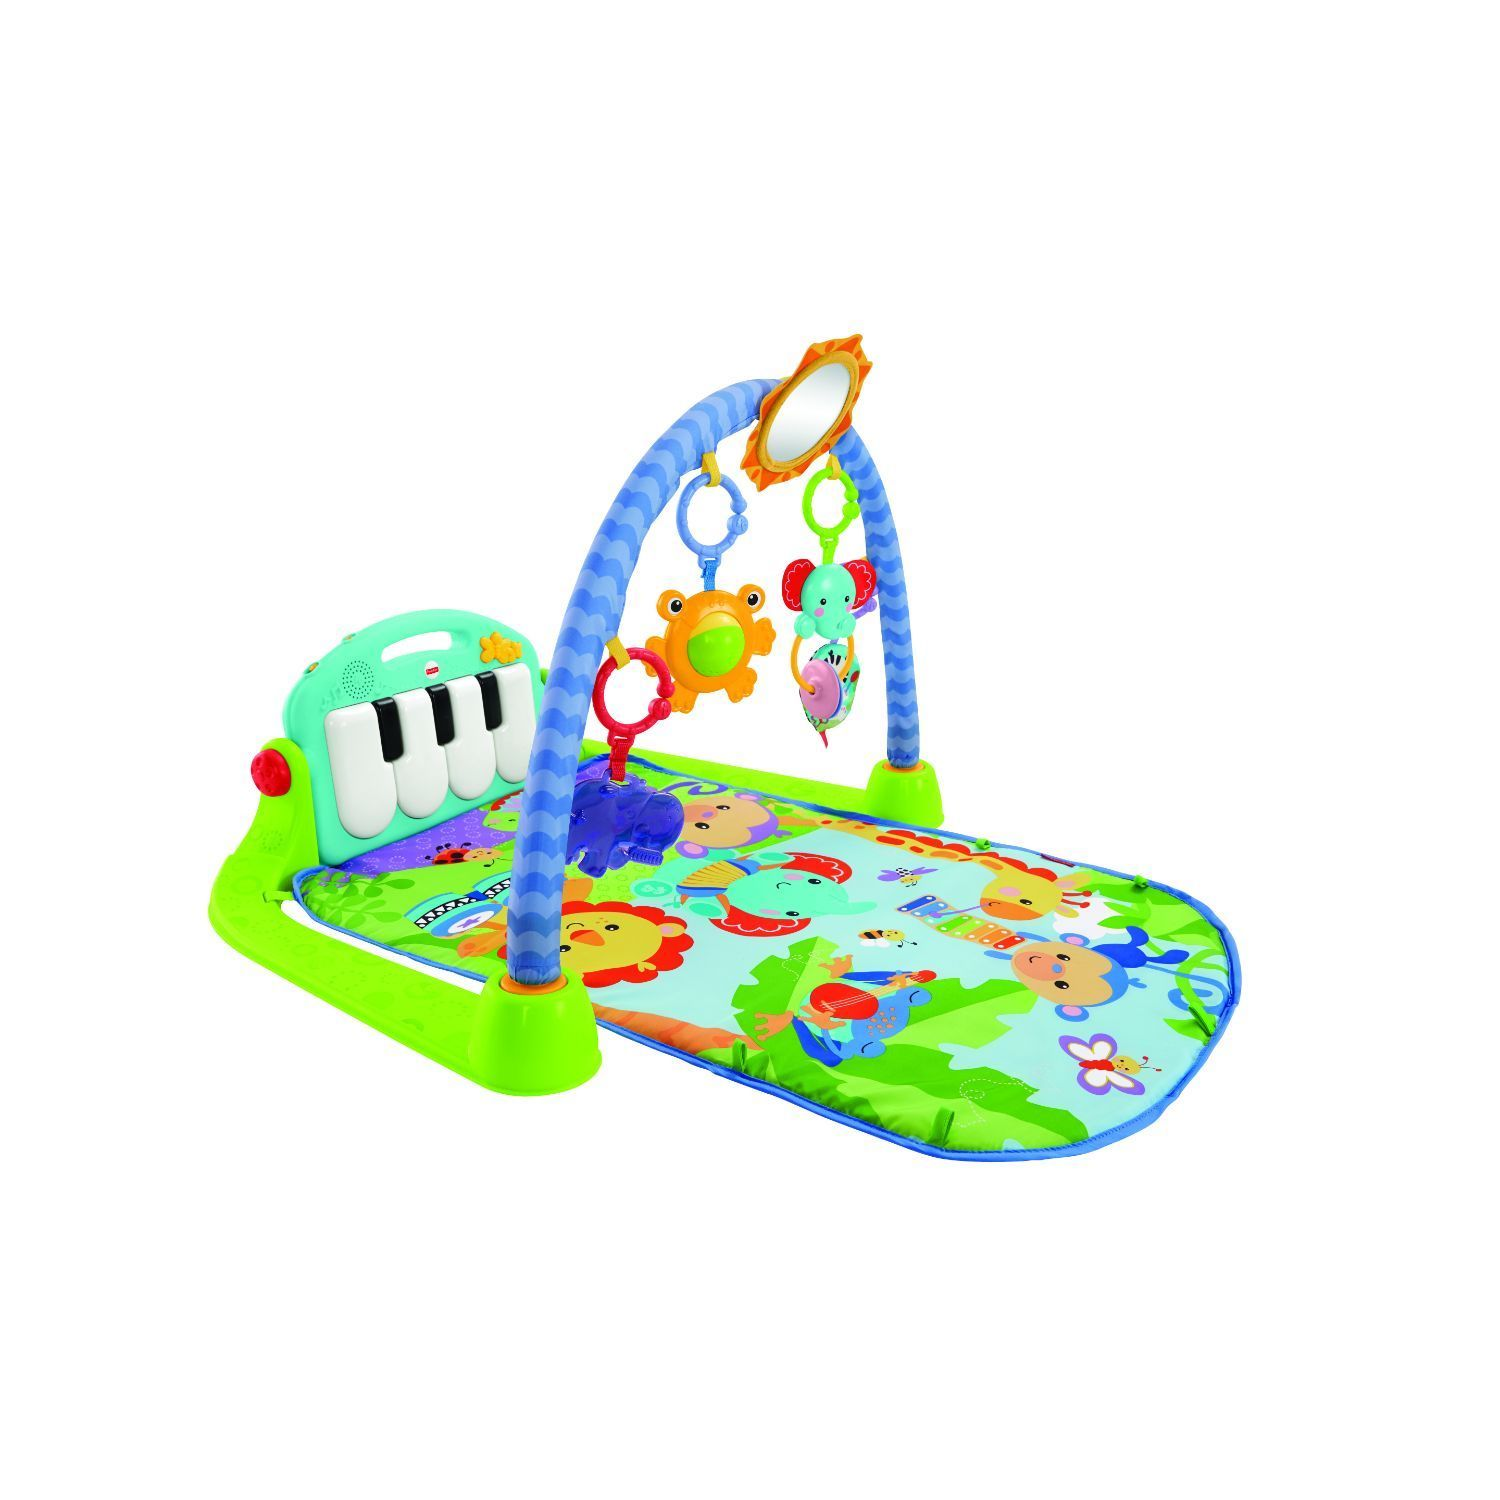 Fisher Price Kick and Play Piano Gym, Grey